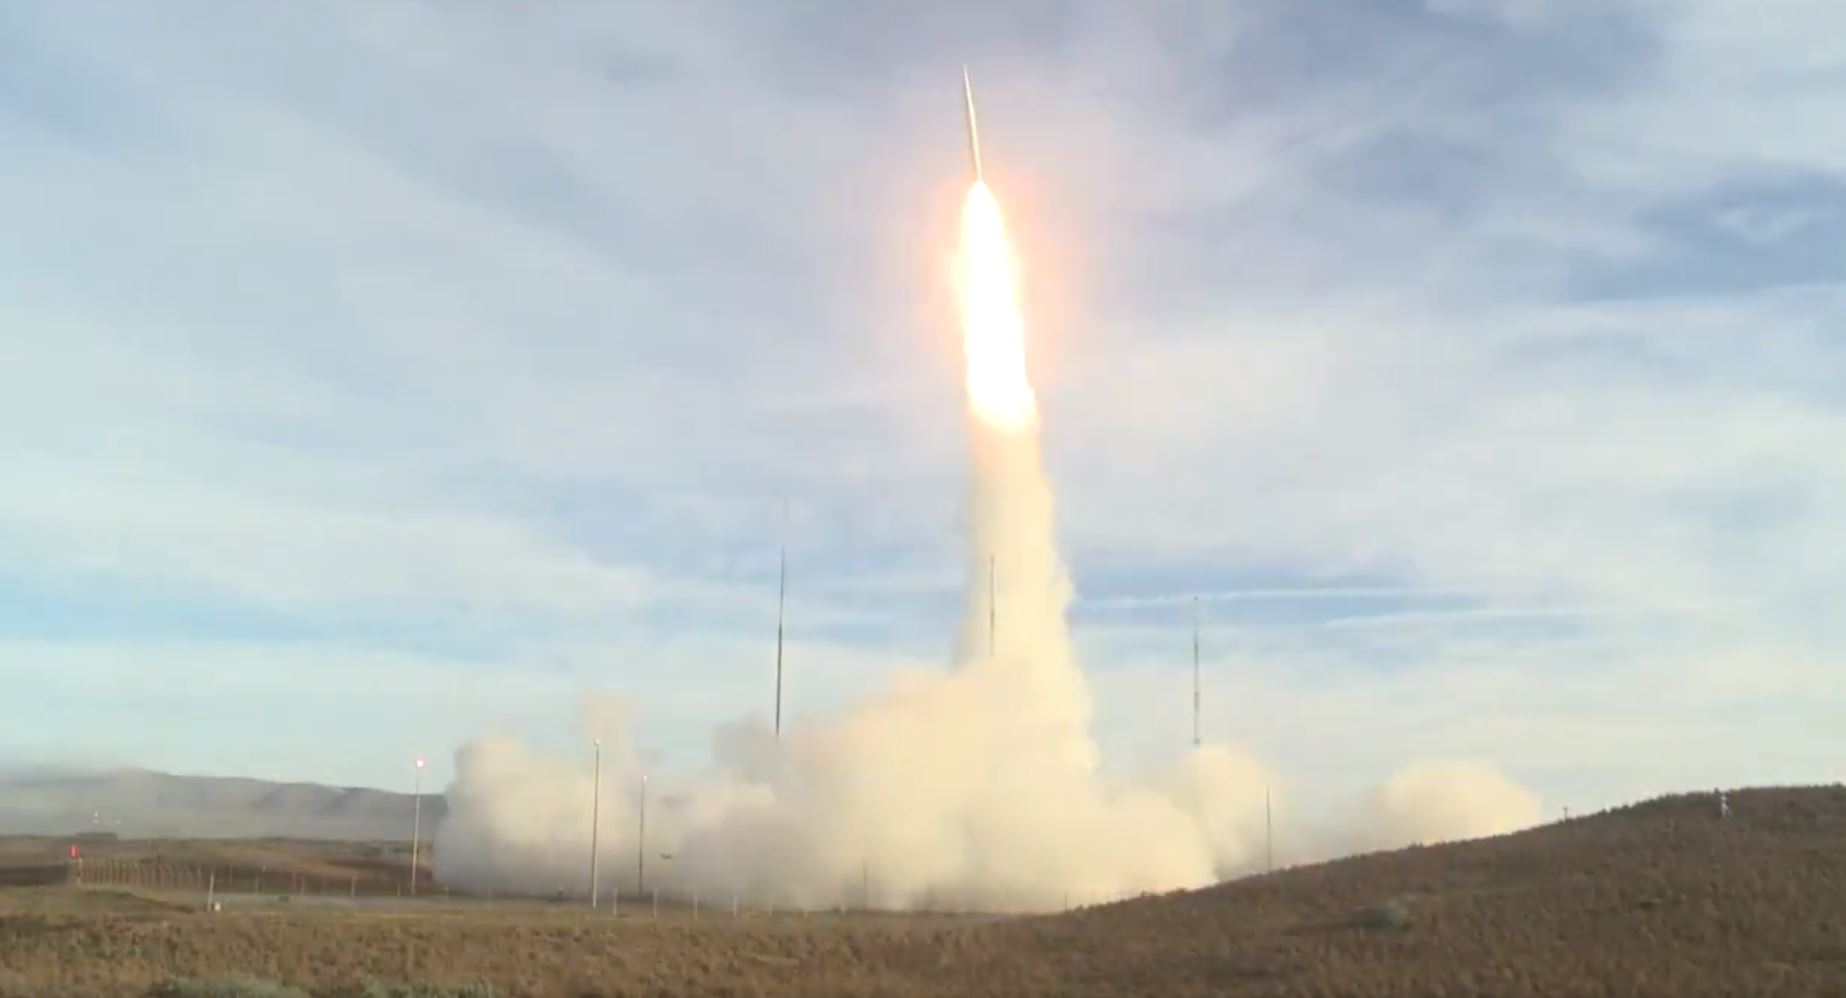 Russian Federation raises concerns over new USA ballistic missile test